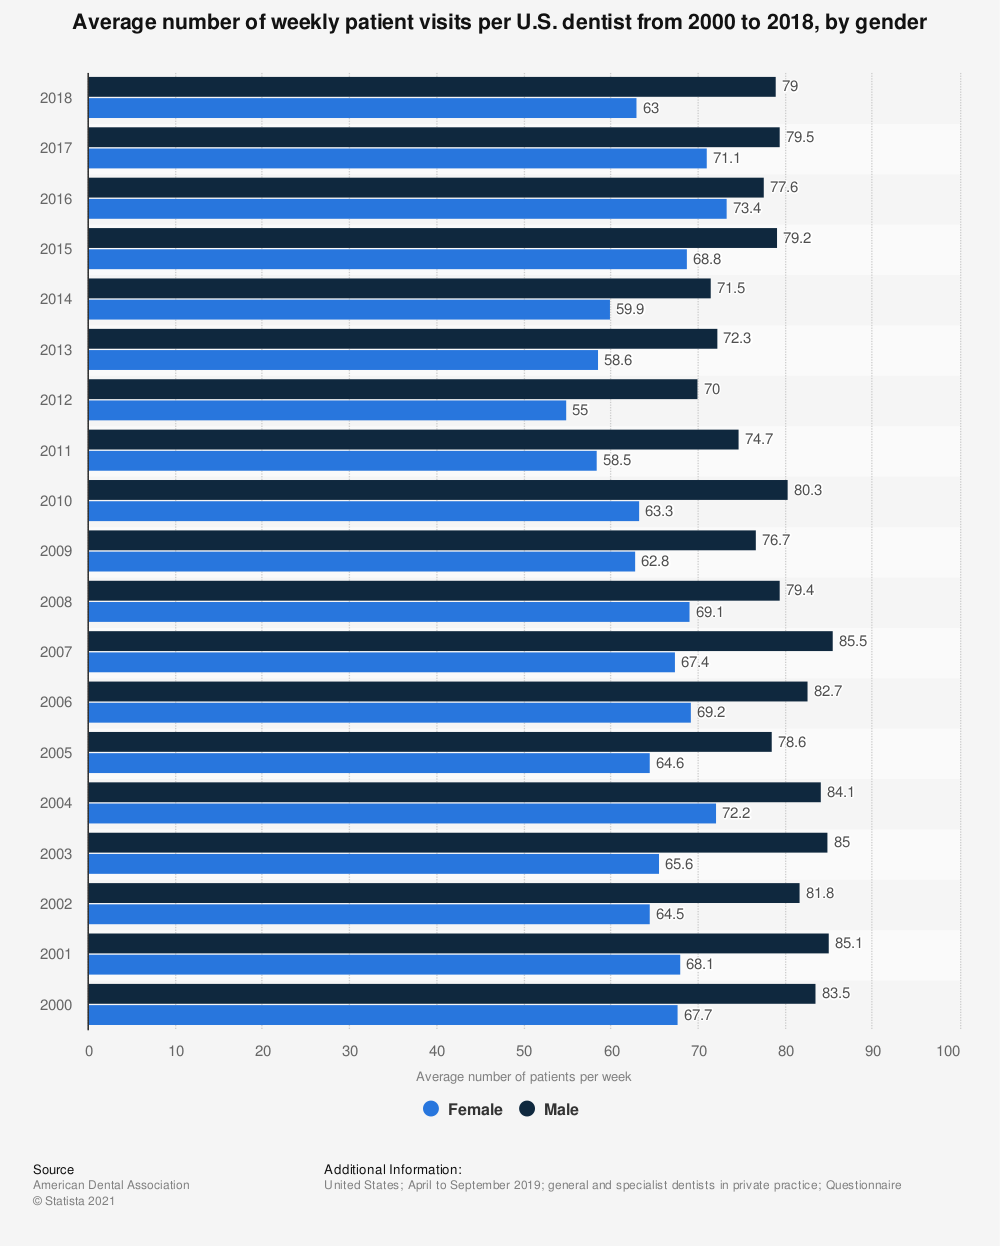 Statistic: Average number of weekly patient visits per U.S. dentist from 2000 to 2018, by gender | Statista